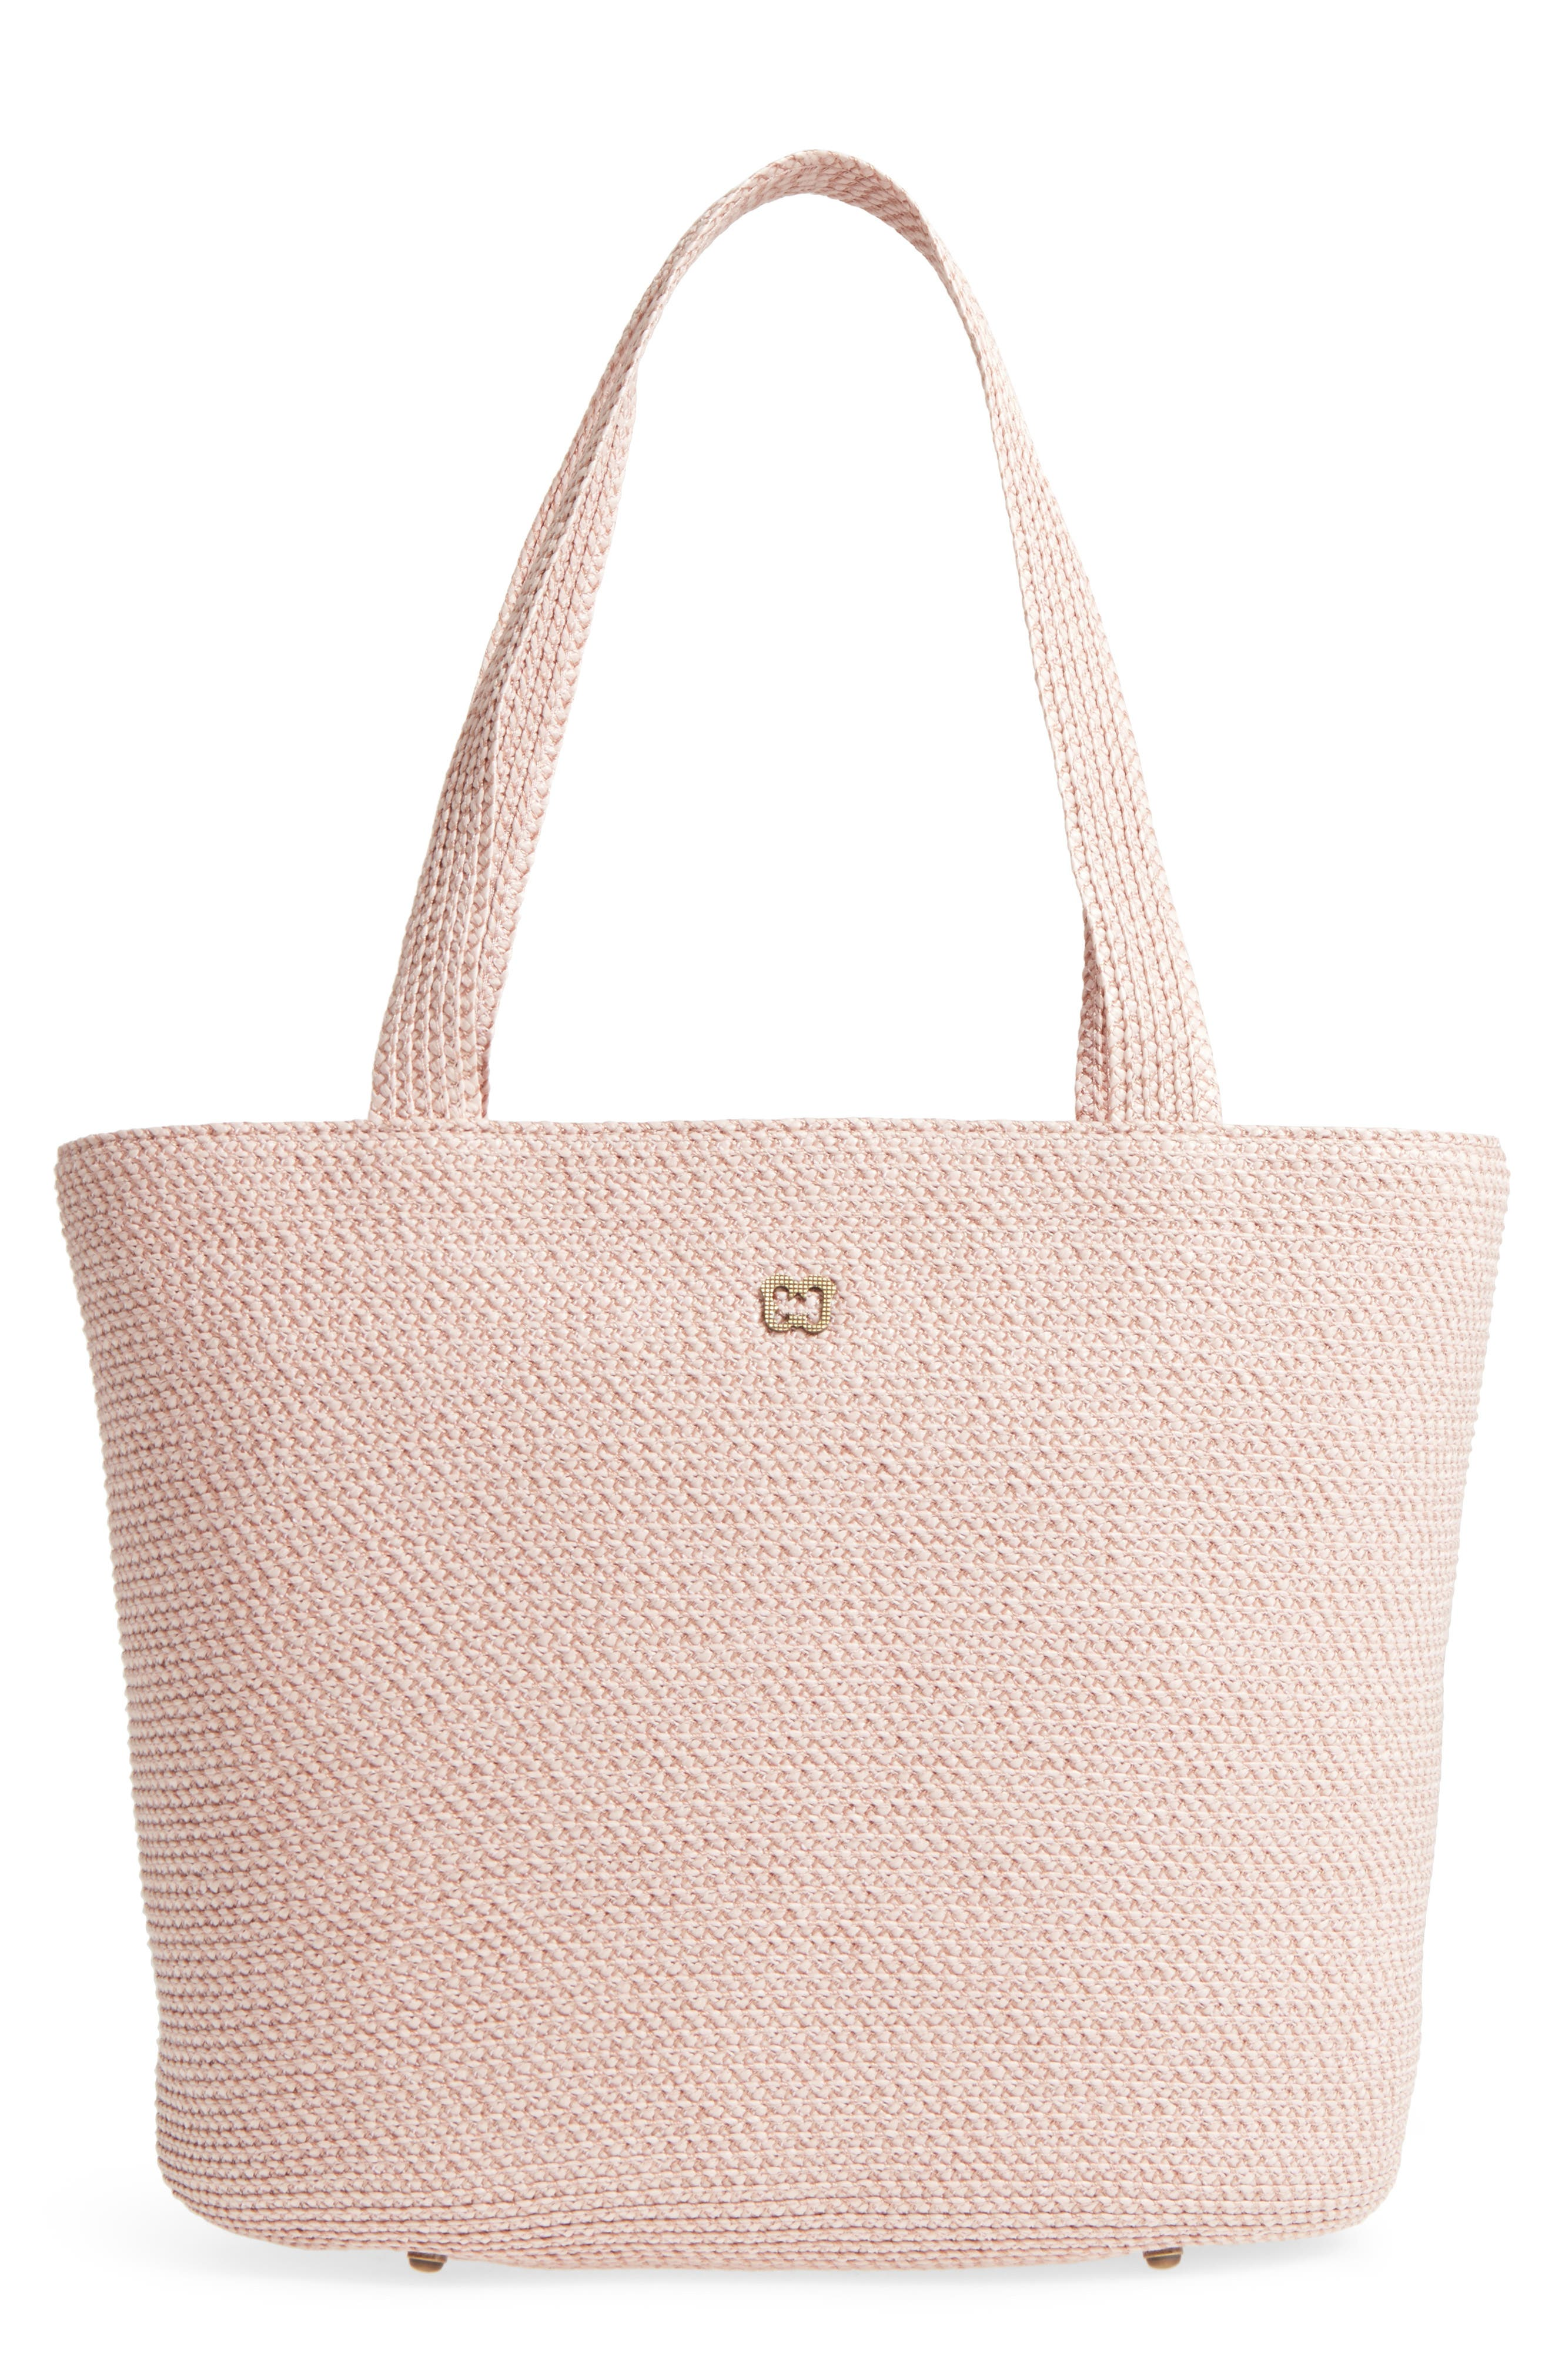 Squishee<sup>®</sup> Tote,                             Main thumbnail 1, color,                             Blush